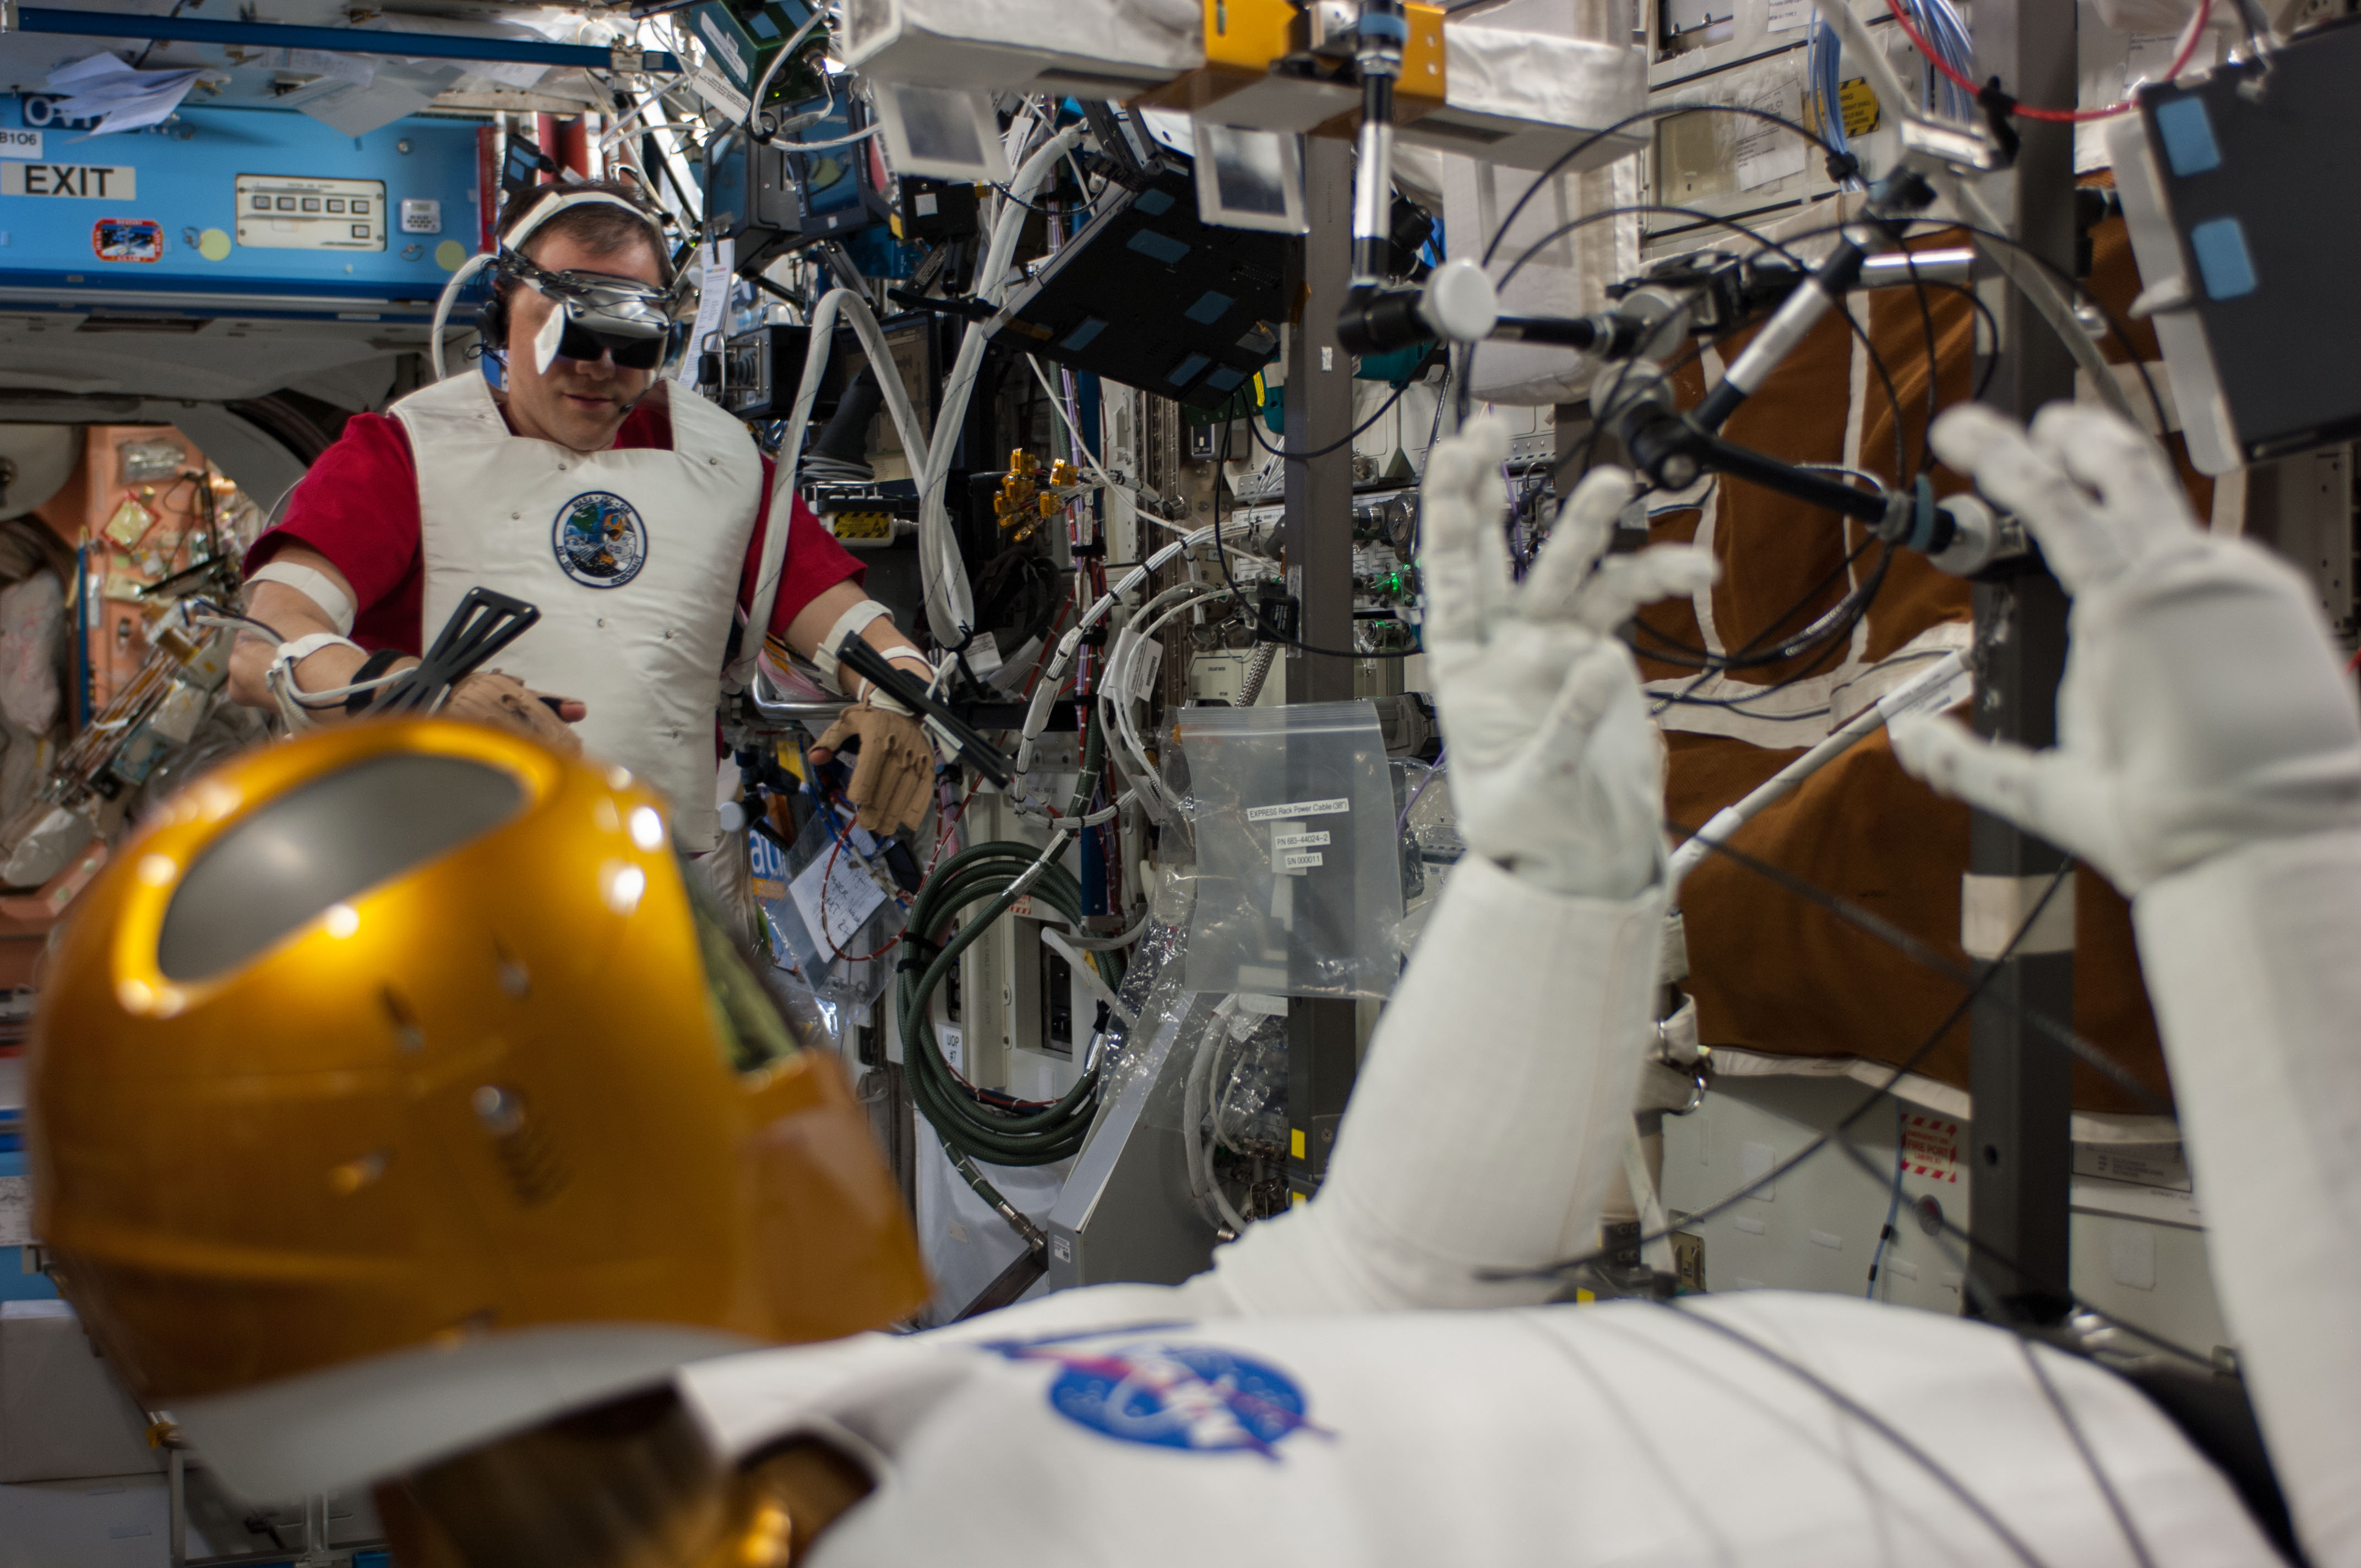 nasa iss robot new - photo #23